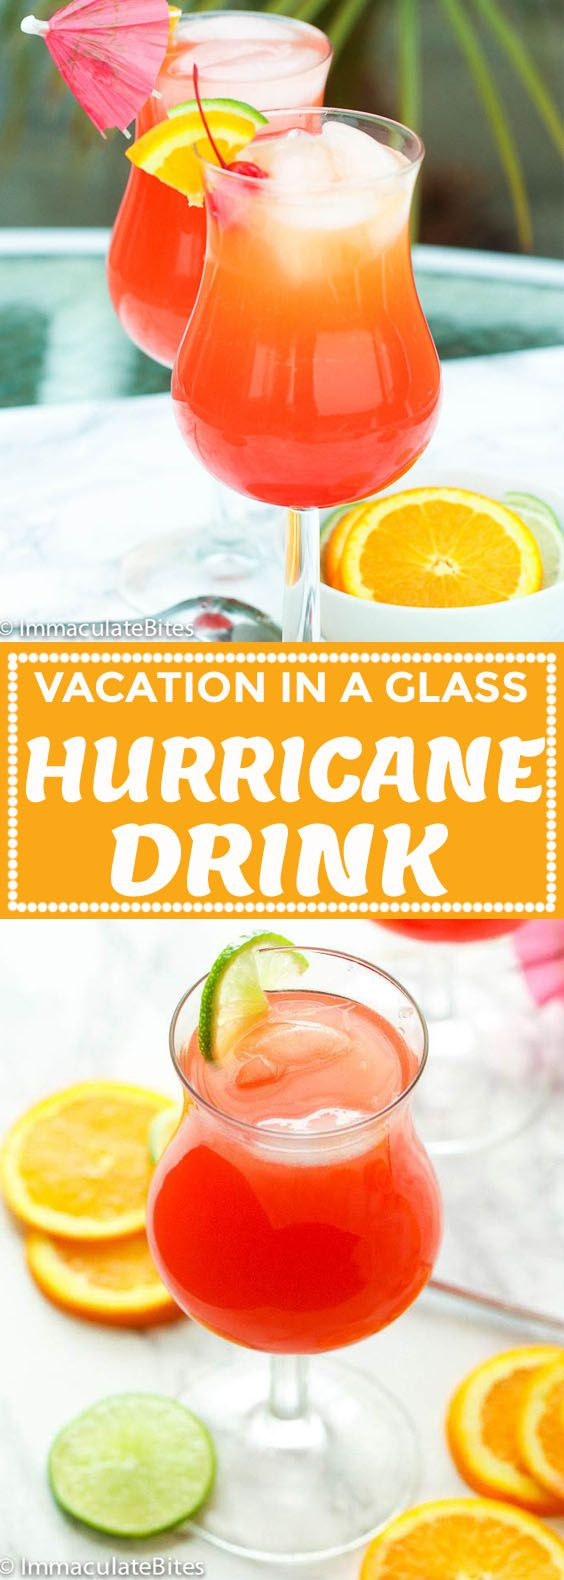 Hurricane Drink Recipe – Immaculate Bites